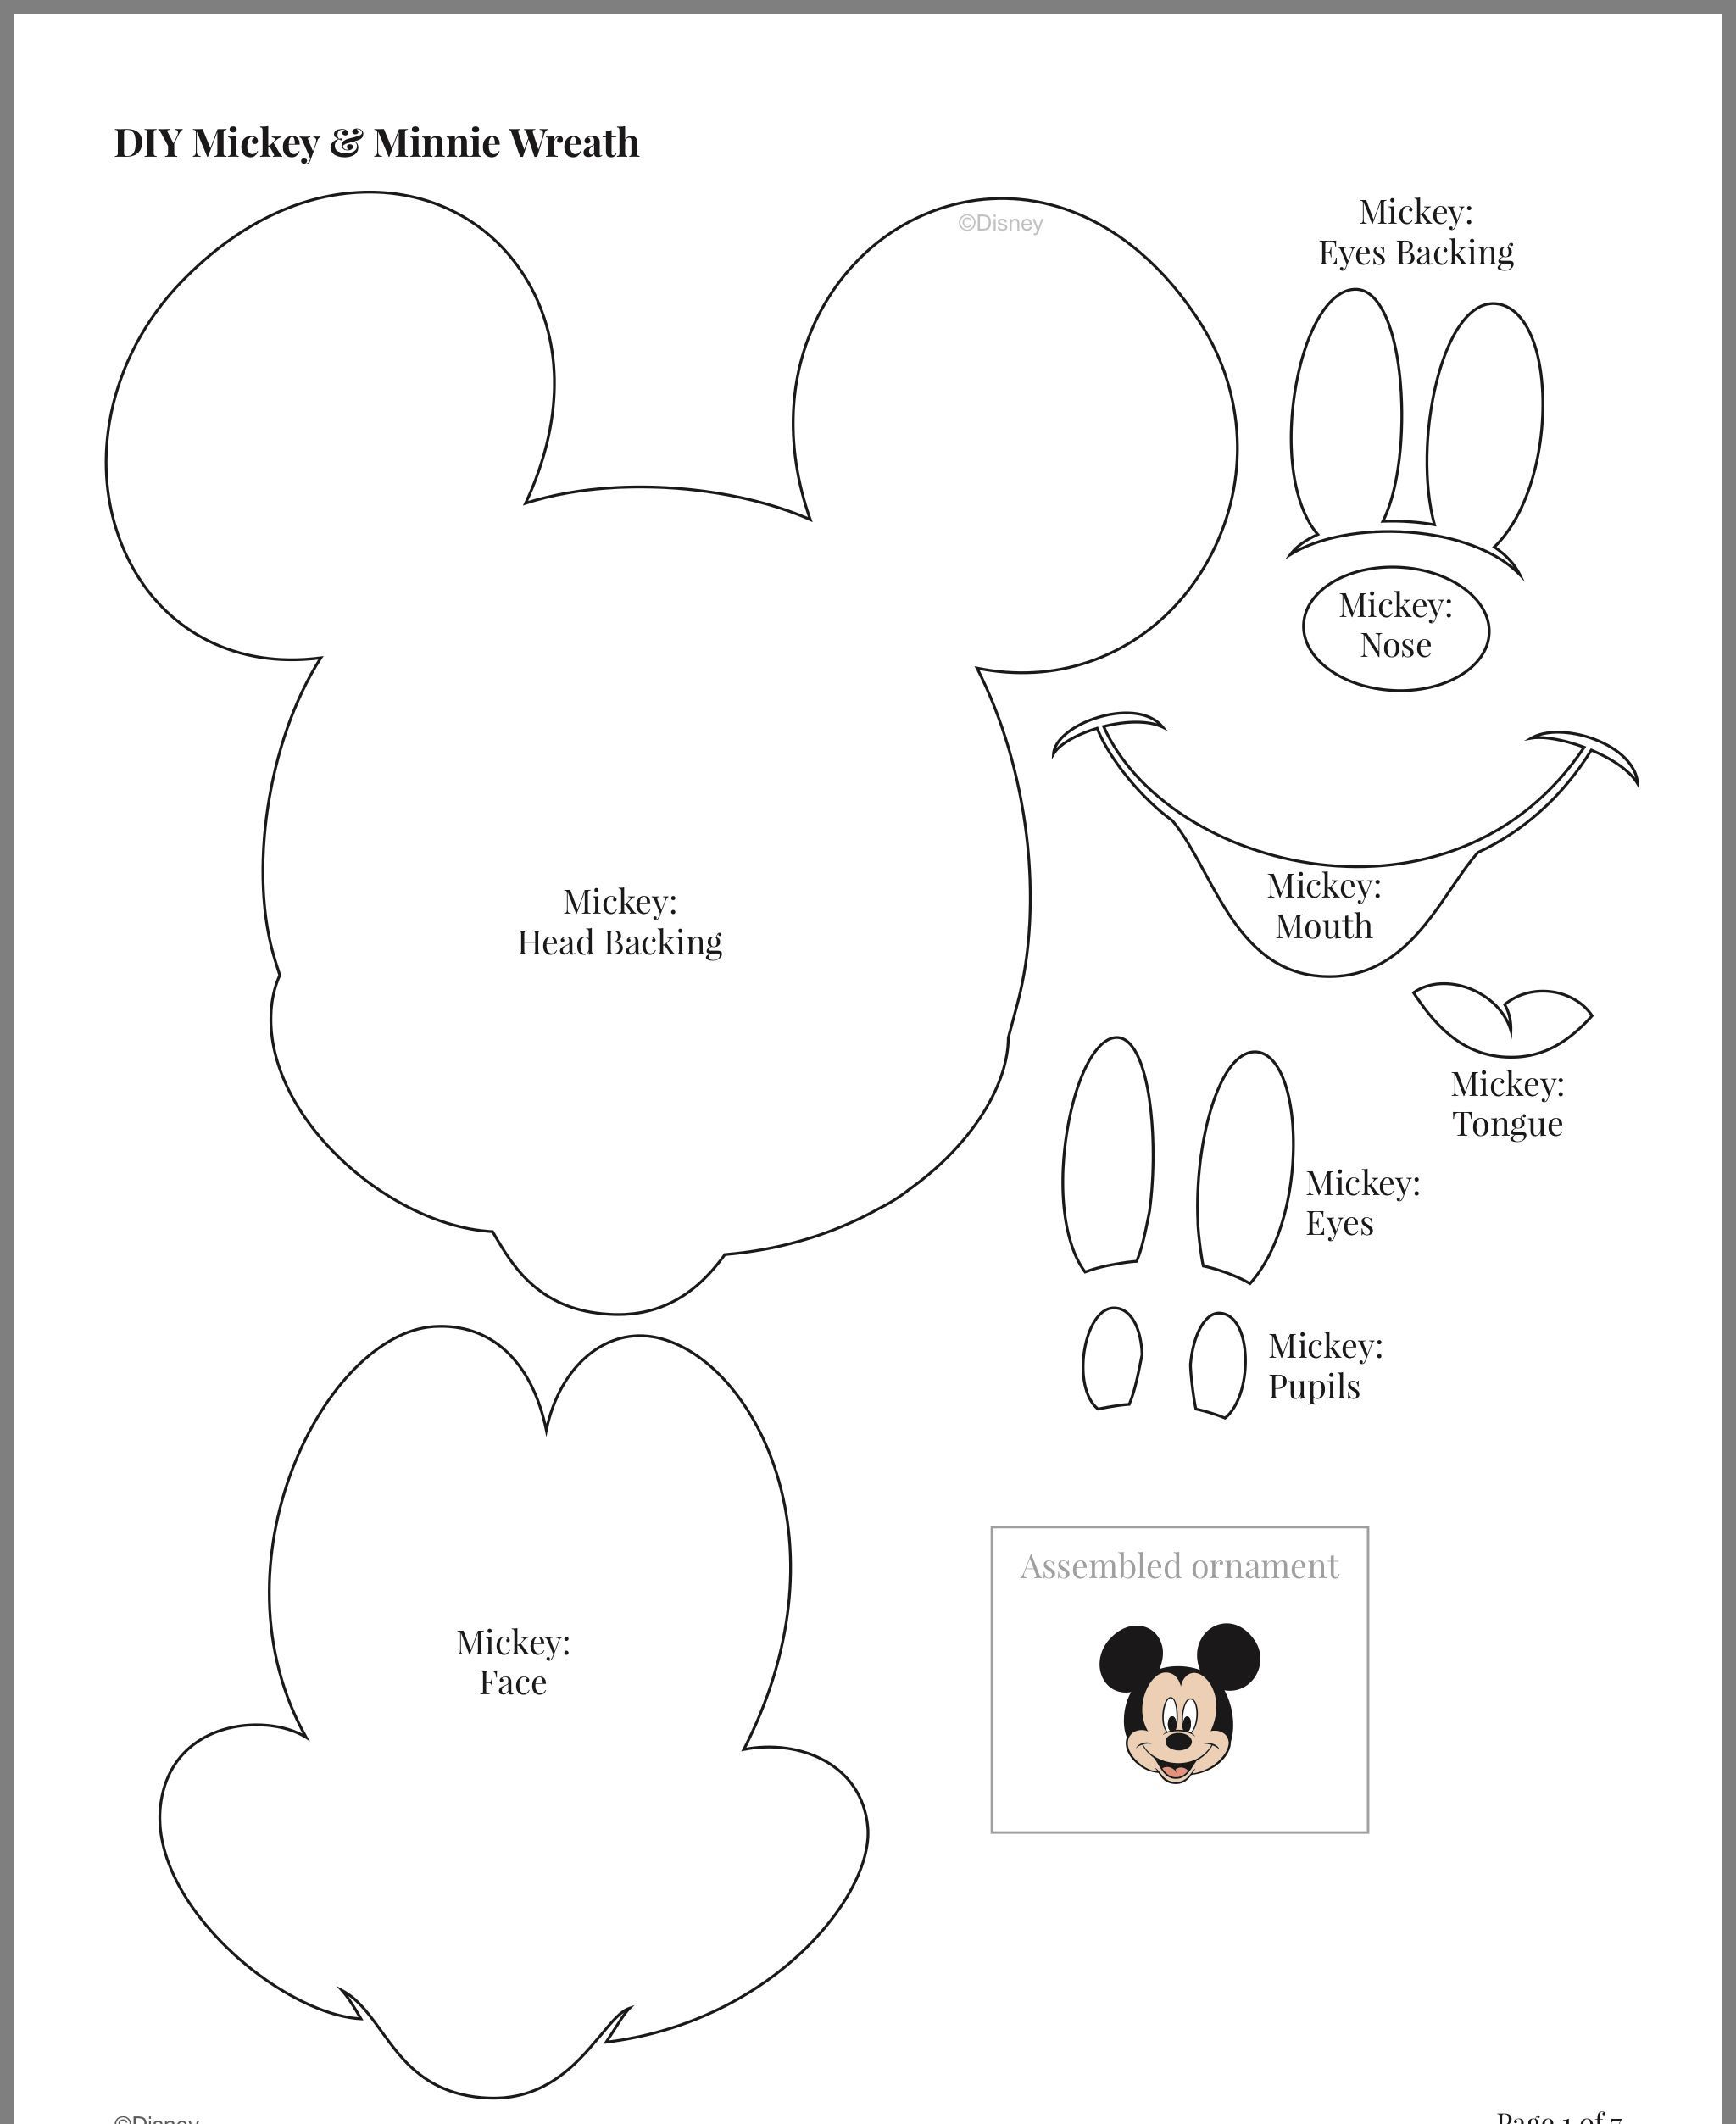 005 Archaicawful Mickey Mouse Face Cake Template Printable High Definition Full